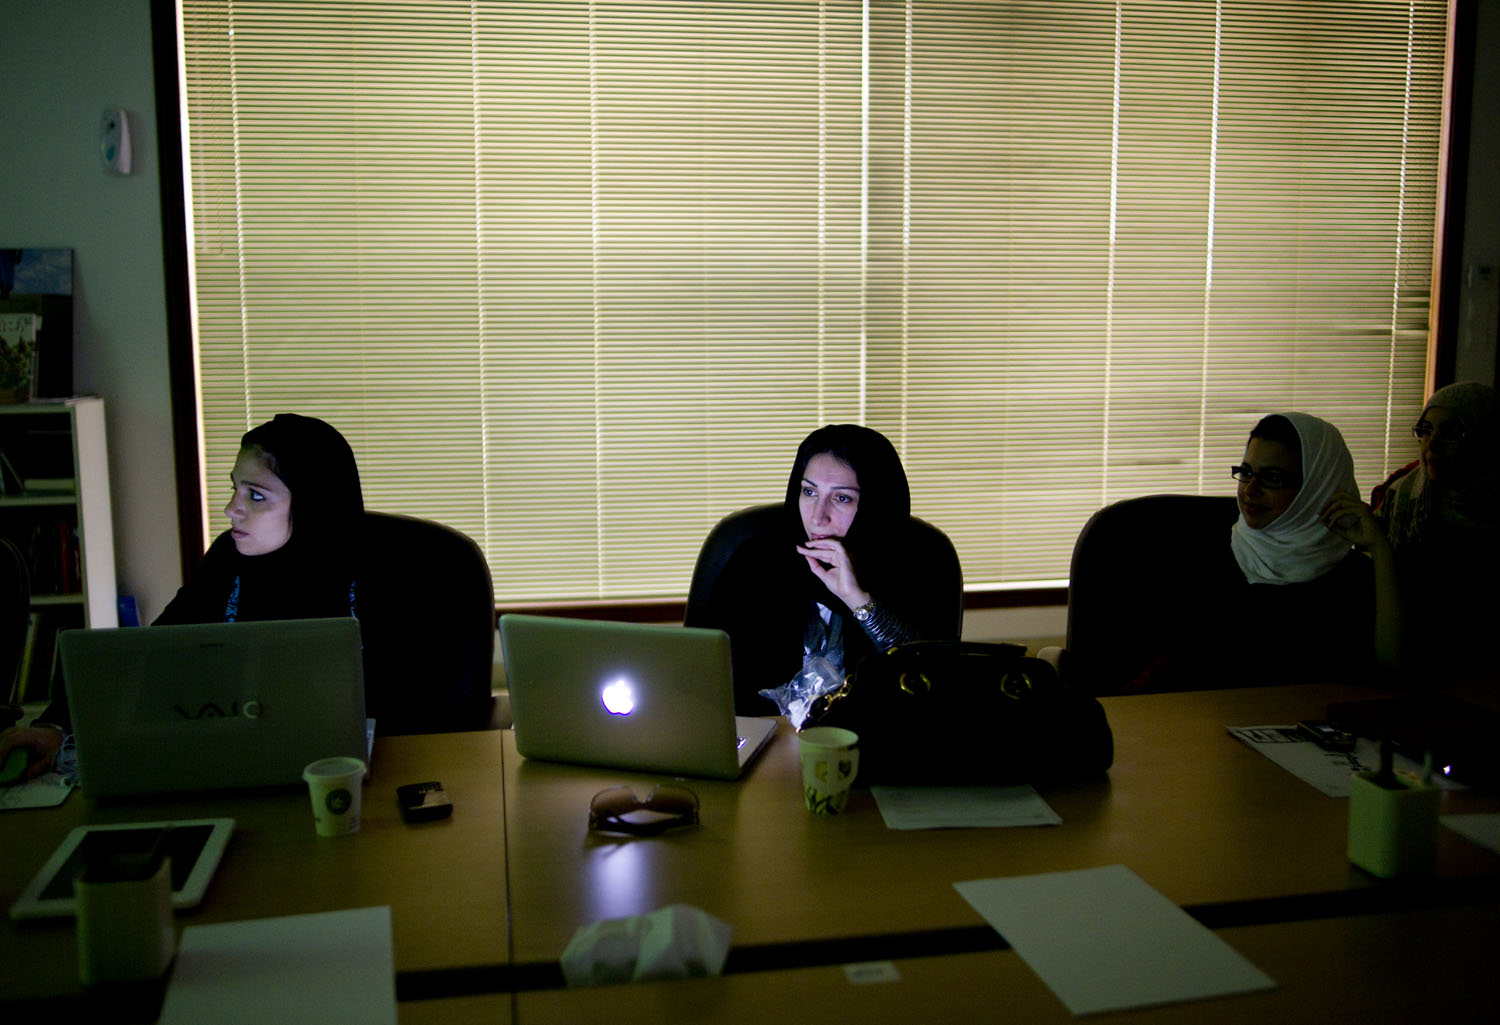 Riam Darwish checks notes on her computer during a presentation in Ahmed el Shukairy's office, in Jeddah, Saudi Arabia, June 16, 2011.  Shukairy, often compared to the Oprah of Saudi, has a very popular television show during Ramadan. In this meeting at his office, he is running previews by his 'dream team' to get their feedback.